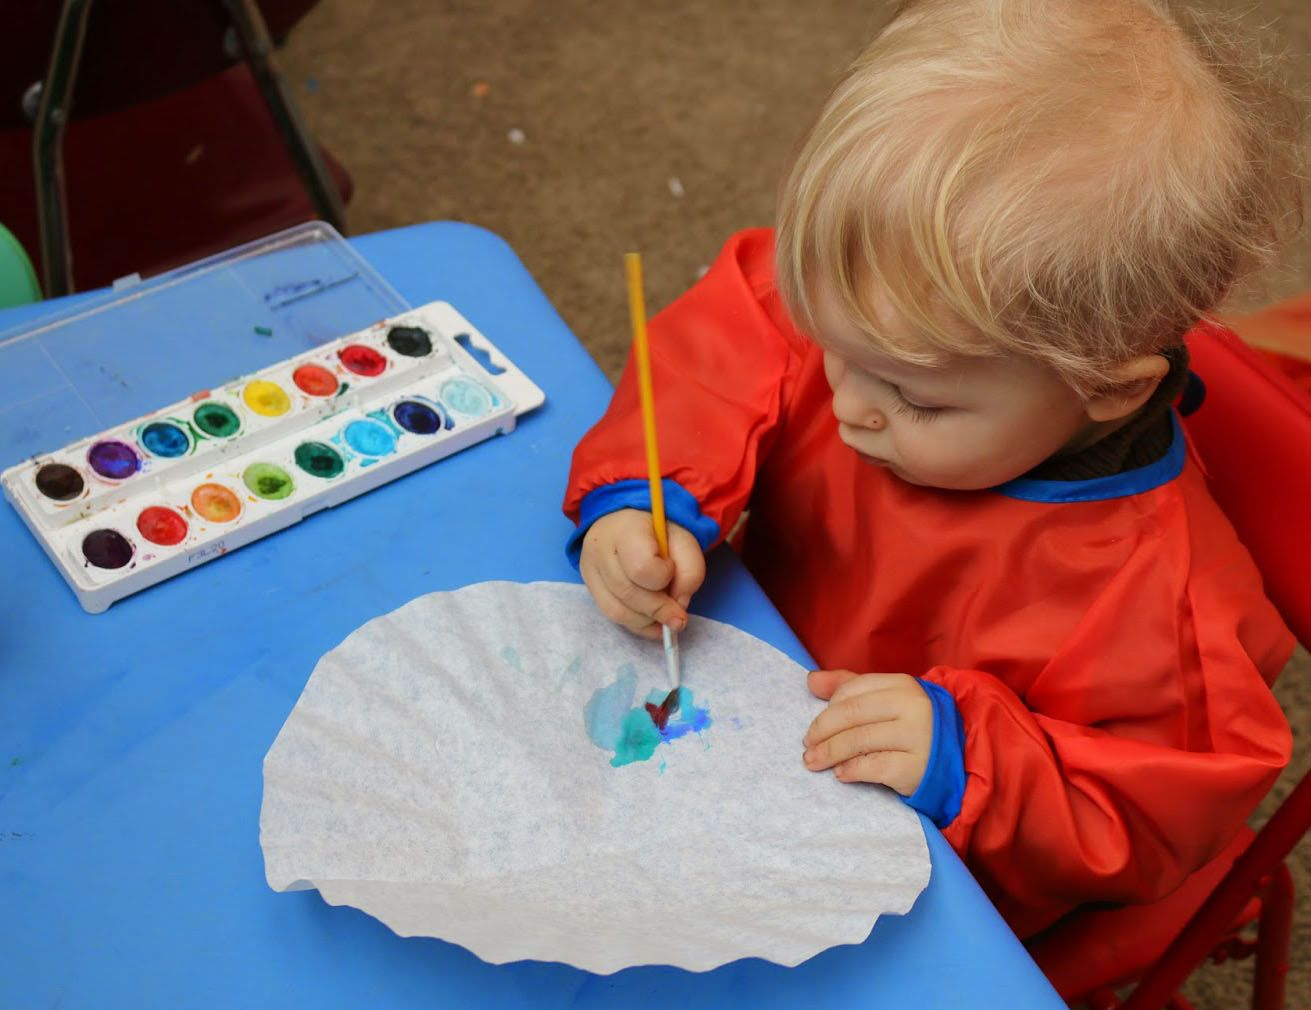 Celebrate Week Of The Young Child With These Fun Activity Ideas